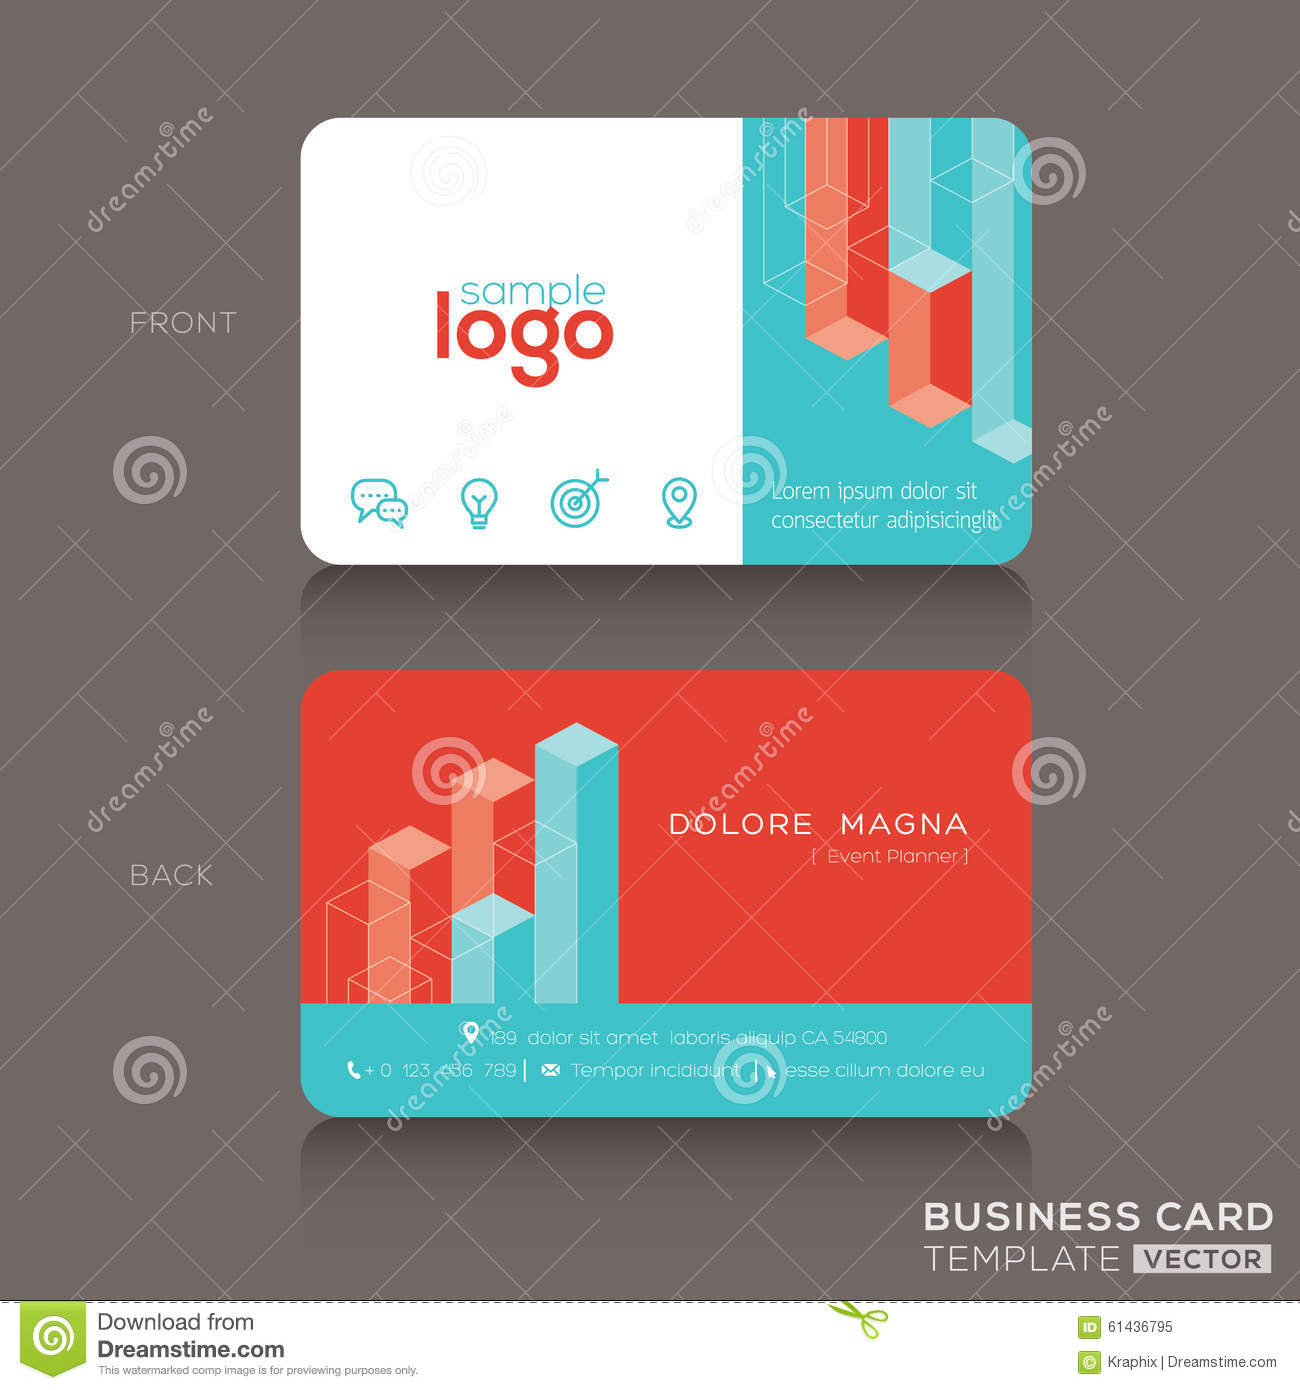 trendy business cards - Targer.golden-dragon.co